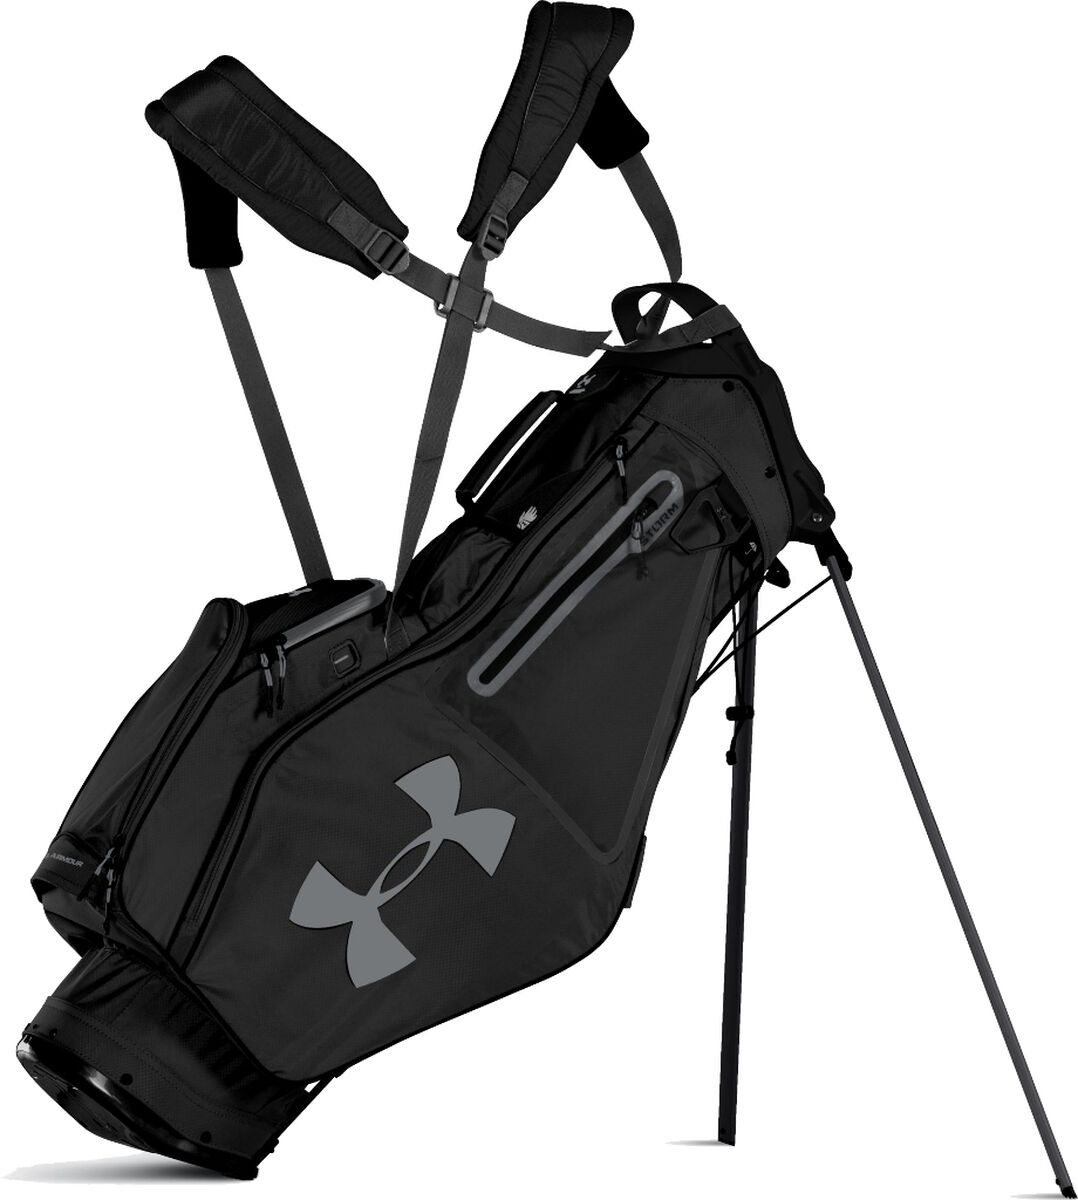 561ab0499a Images. Under Armour Storm Speedround Stand Bag